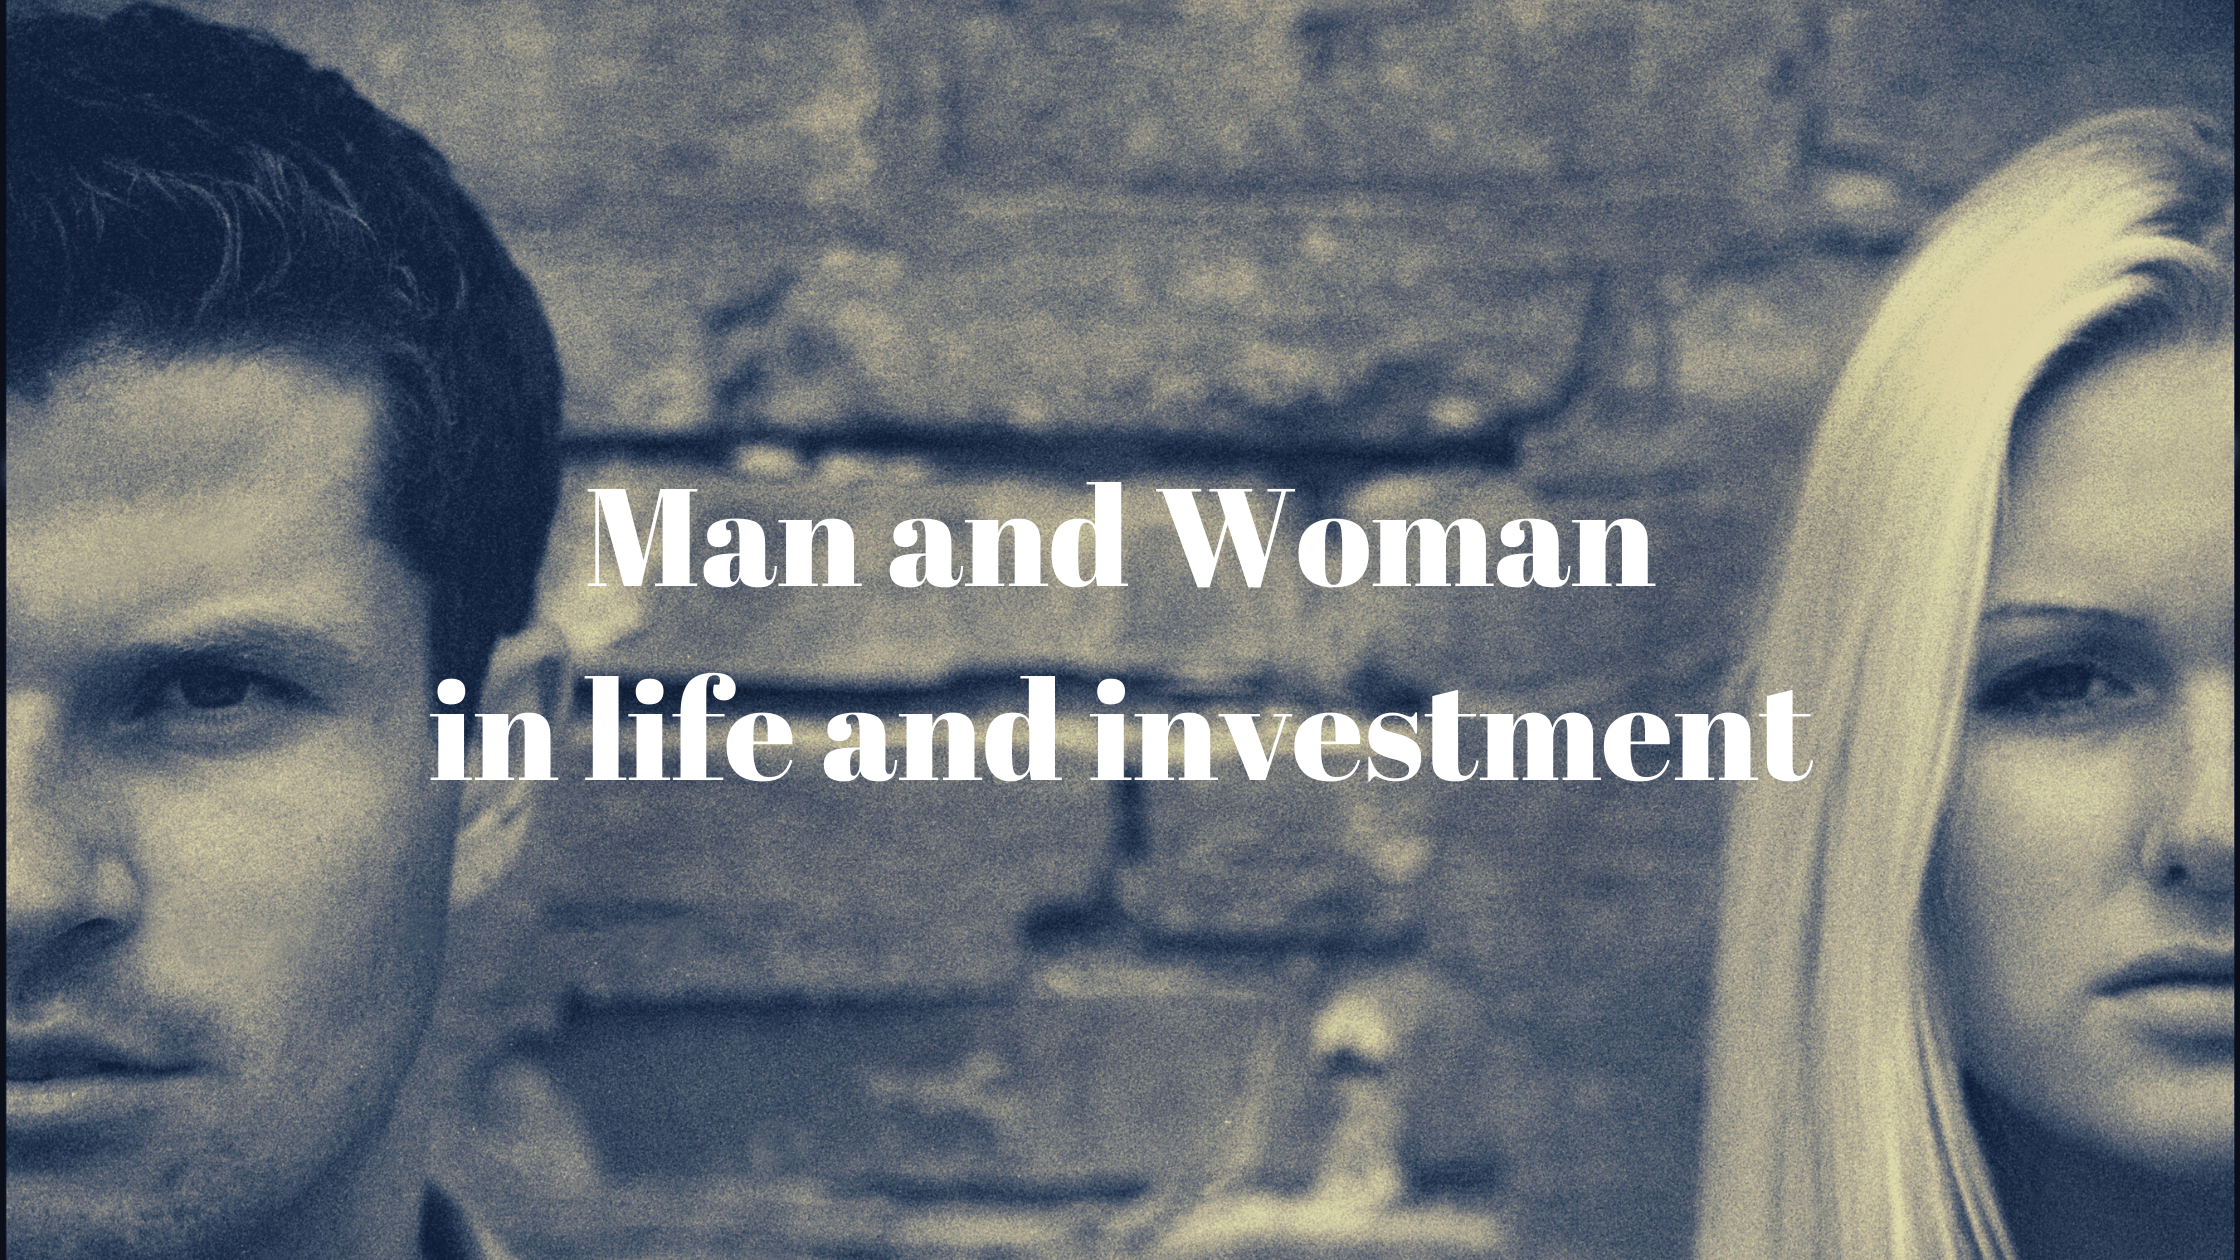 Man and Woman in life and investments